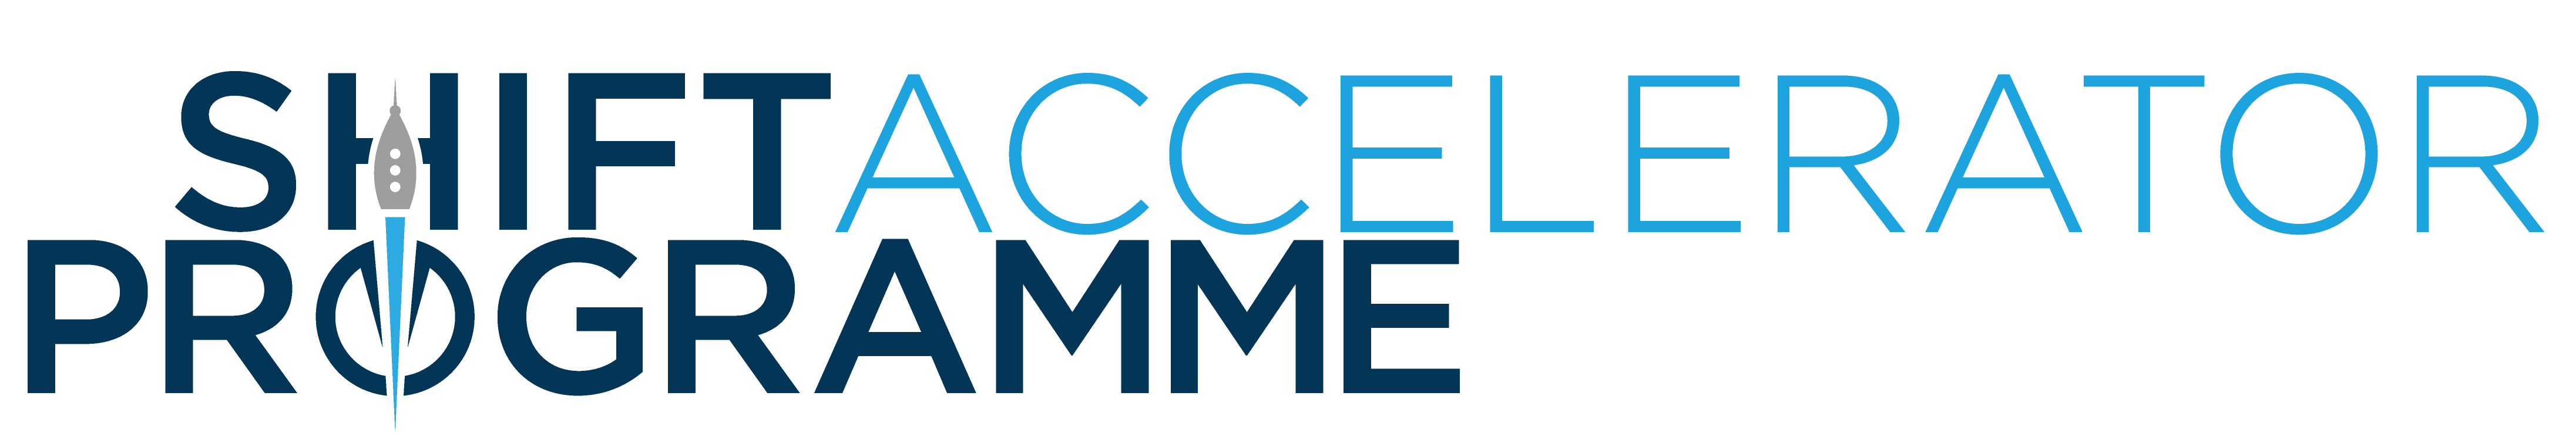 Accelerate business growth with our Accelerator Programme